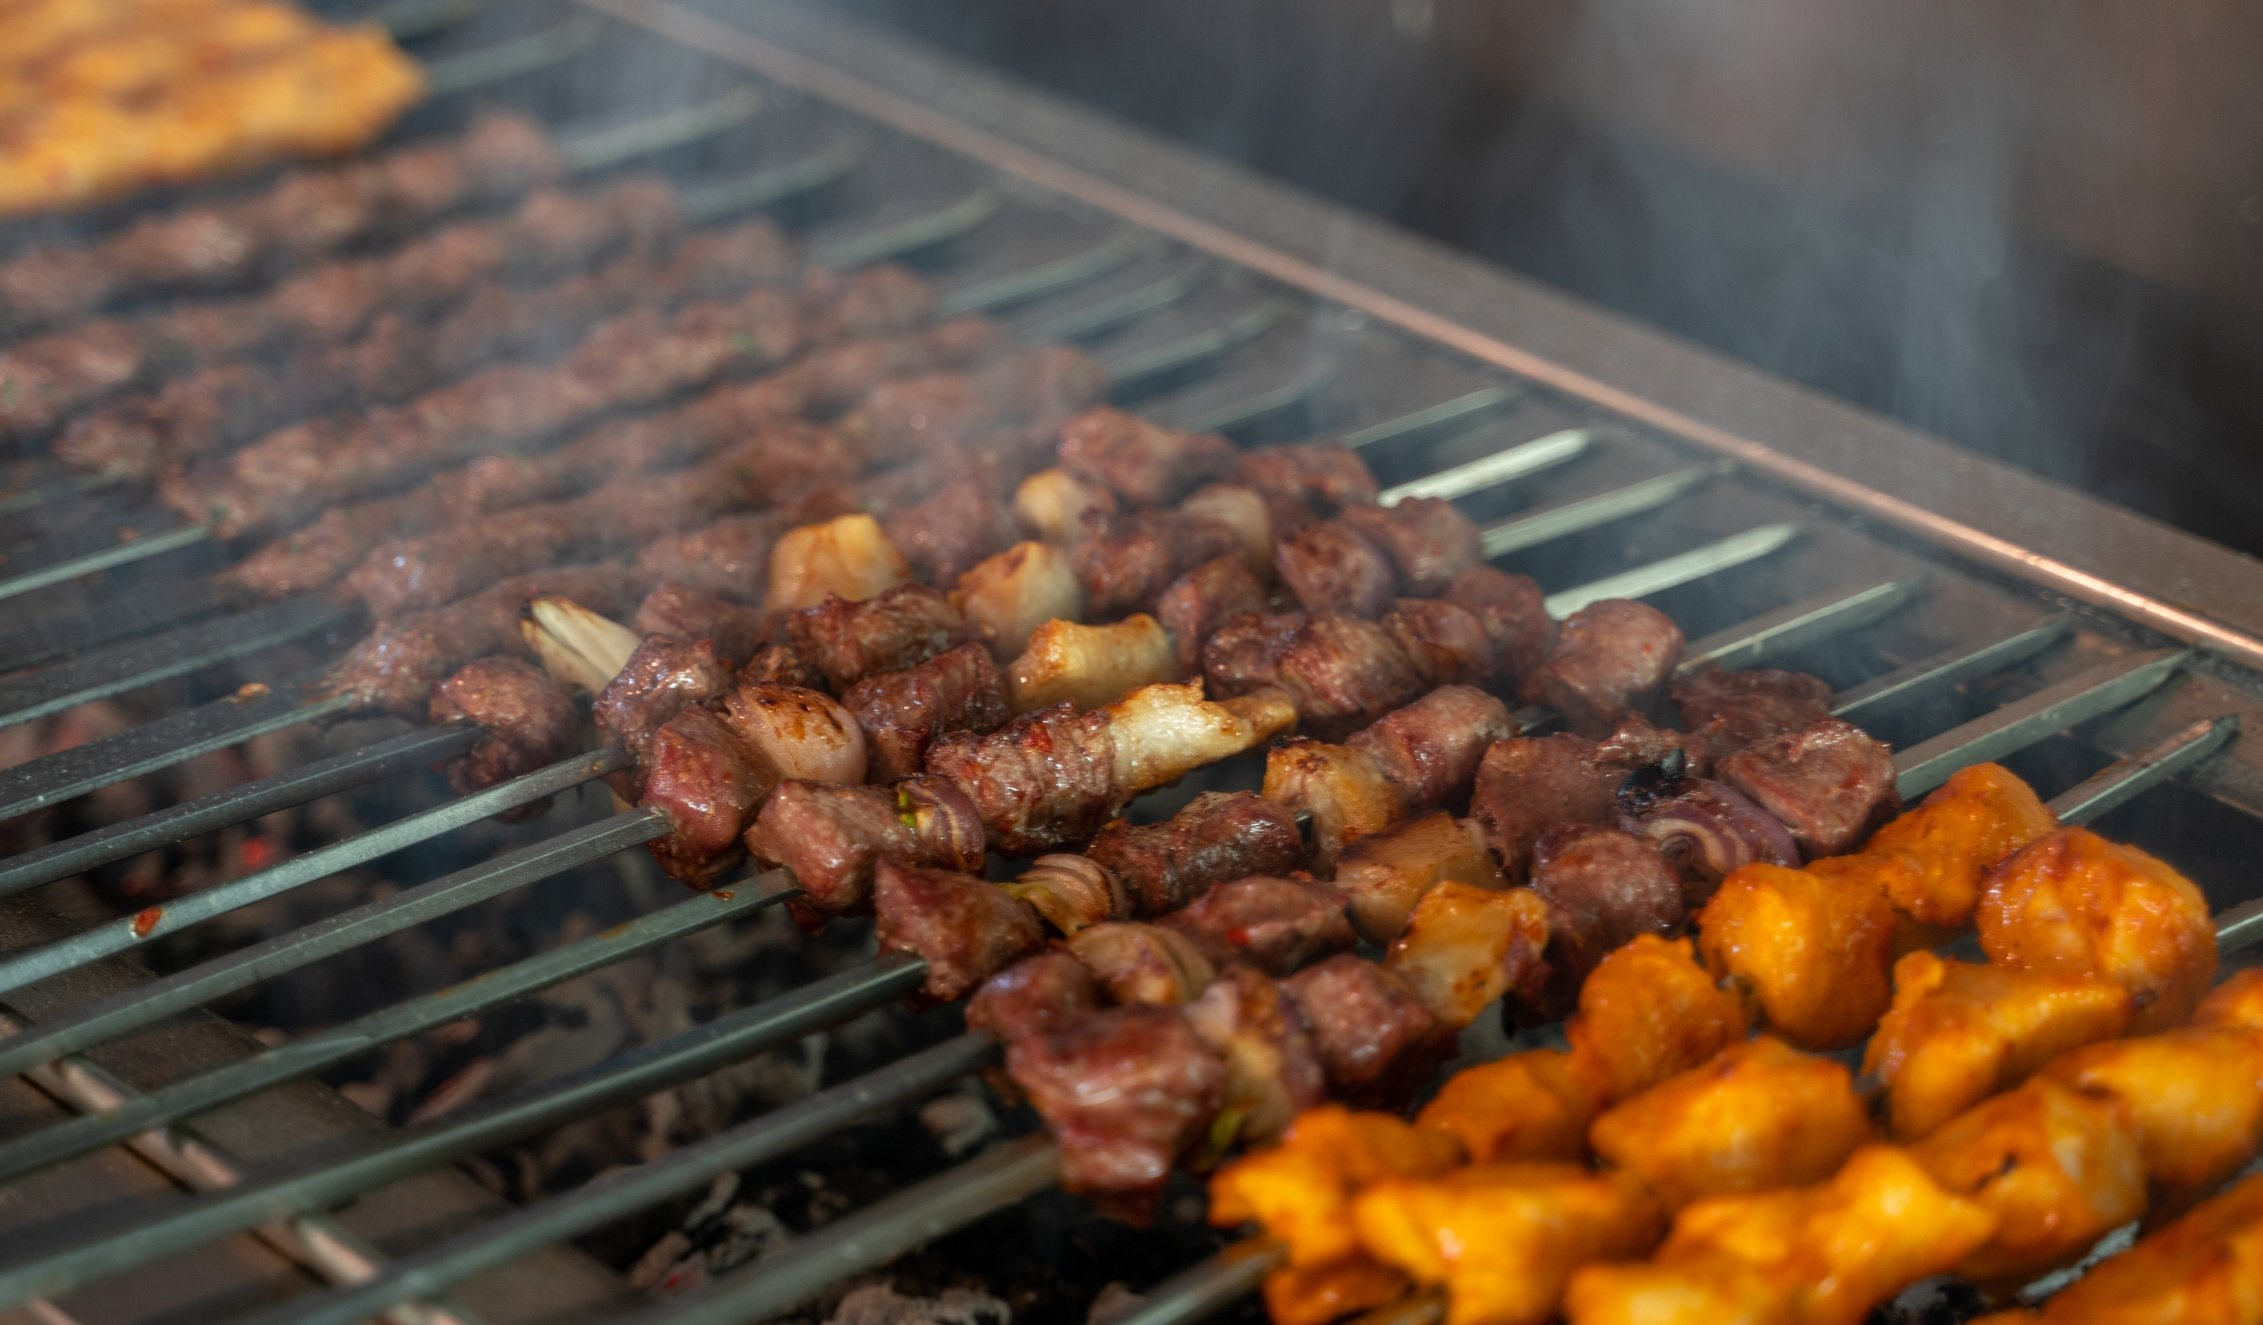 Şaşlık kebab is a dish of skewered and grilled cubes of meat. (iStock Photo)